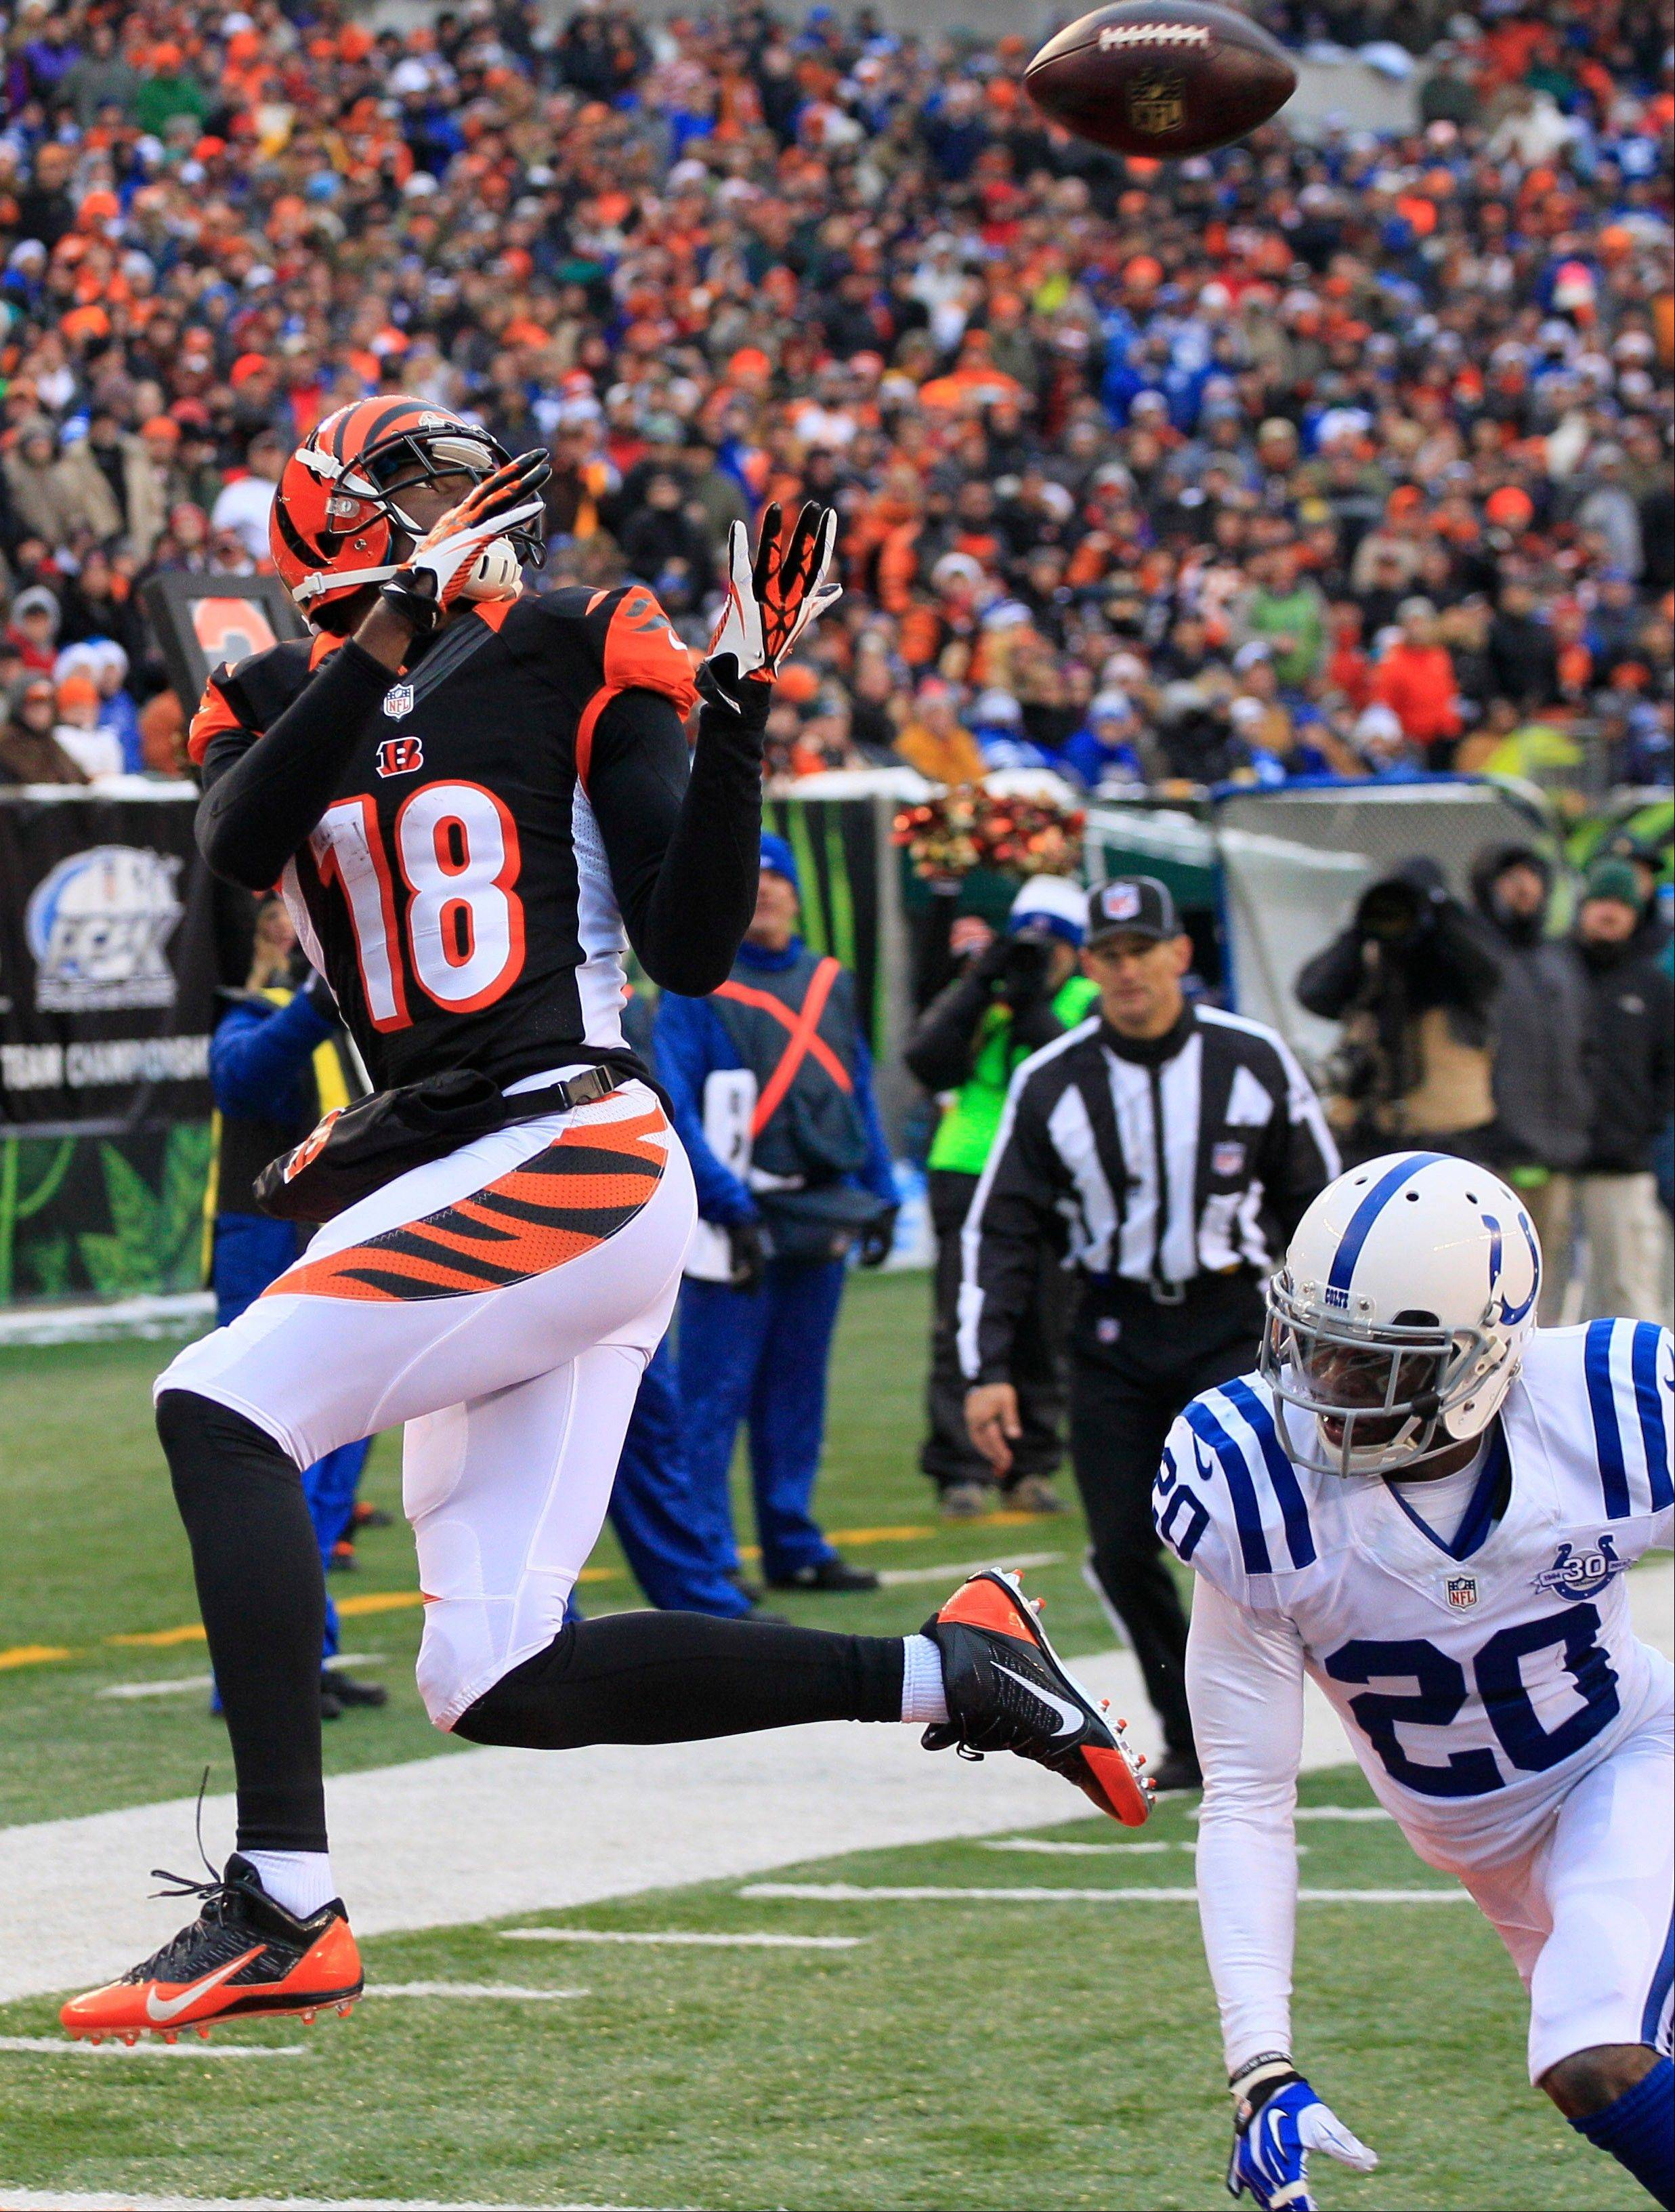 Cincinnati Bengals wide receiver A.J. Green (18) catches a 9-yard touchdown pass against Indianapolis Colts free safety Darius Butler (20) in the second half of an NFL football game, Sunday, Dec. 8, 2013, in Cincinnati.